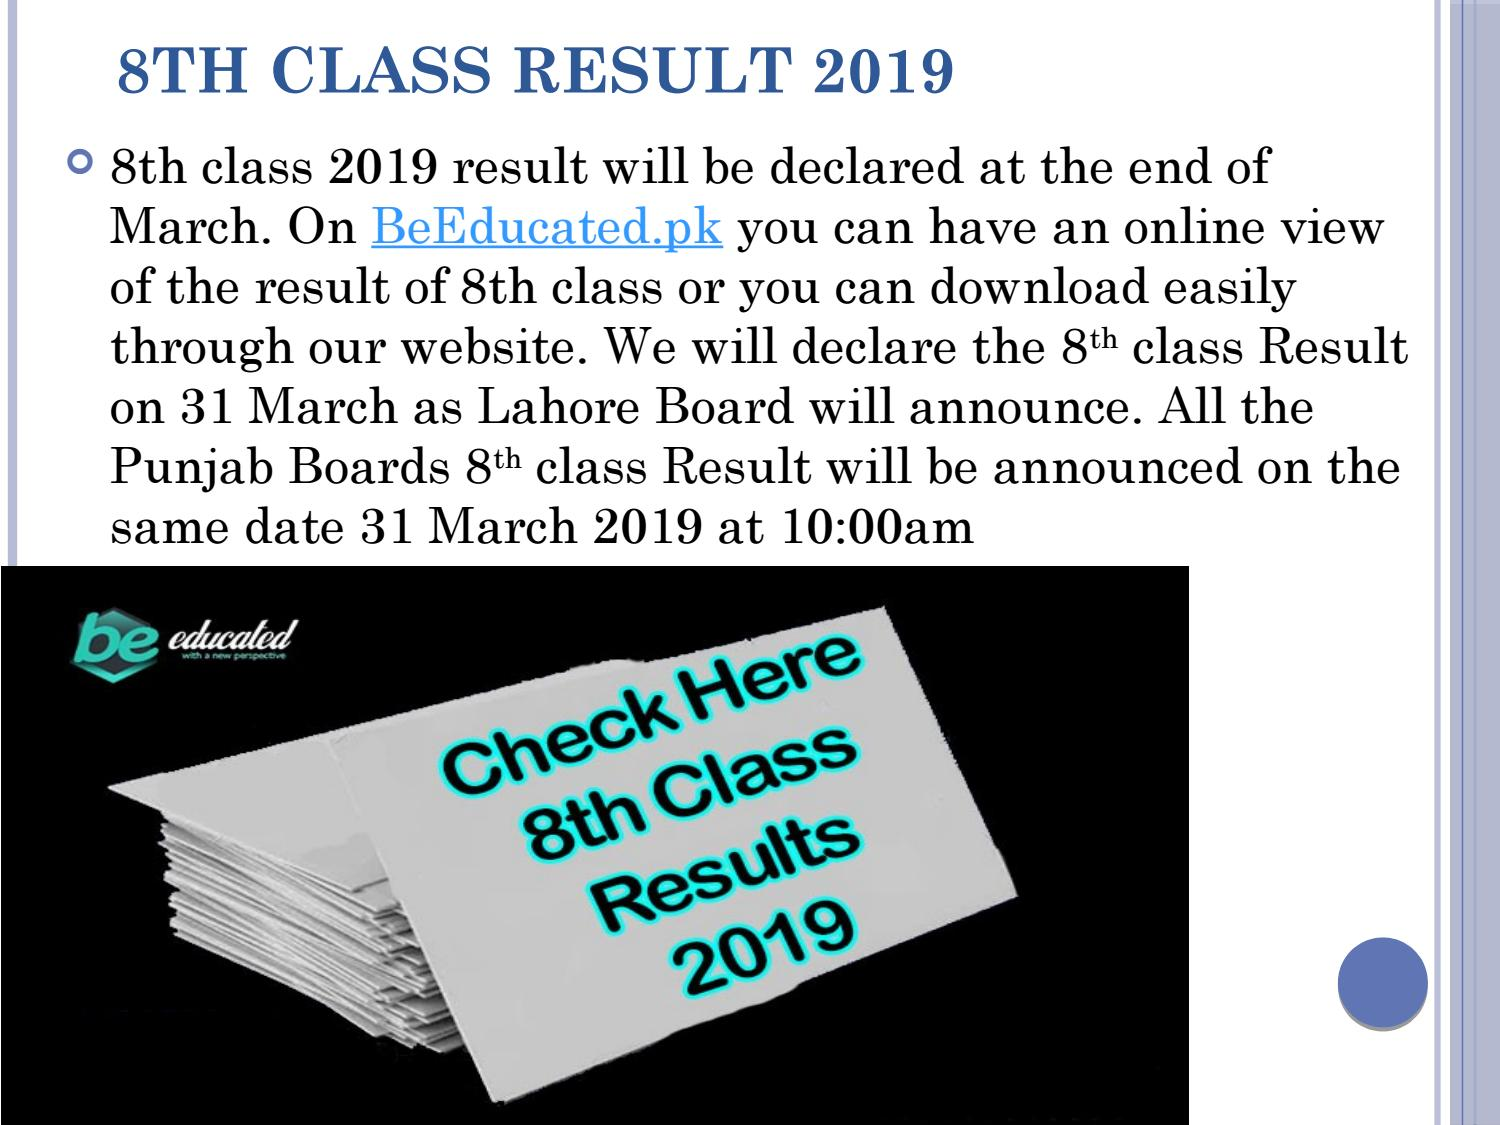 8th class result 2019 by jessica3006 - issuu